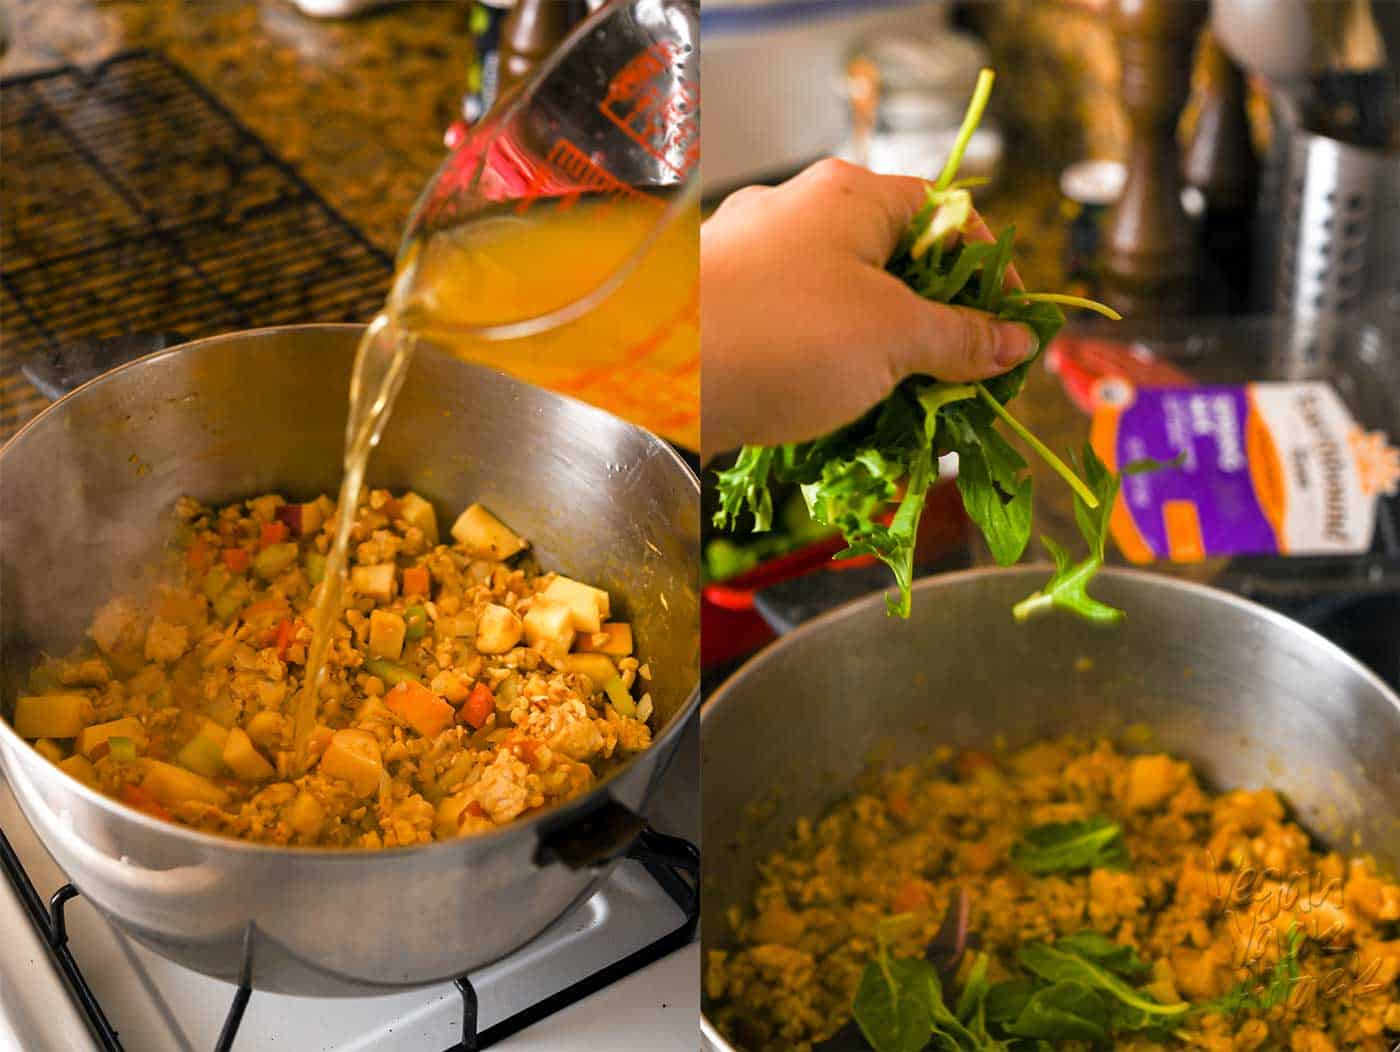 Pouring vegetable broth into a stuffing mix, within a large pot. Then, adding greens to the pot of stuffing mix.